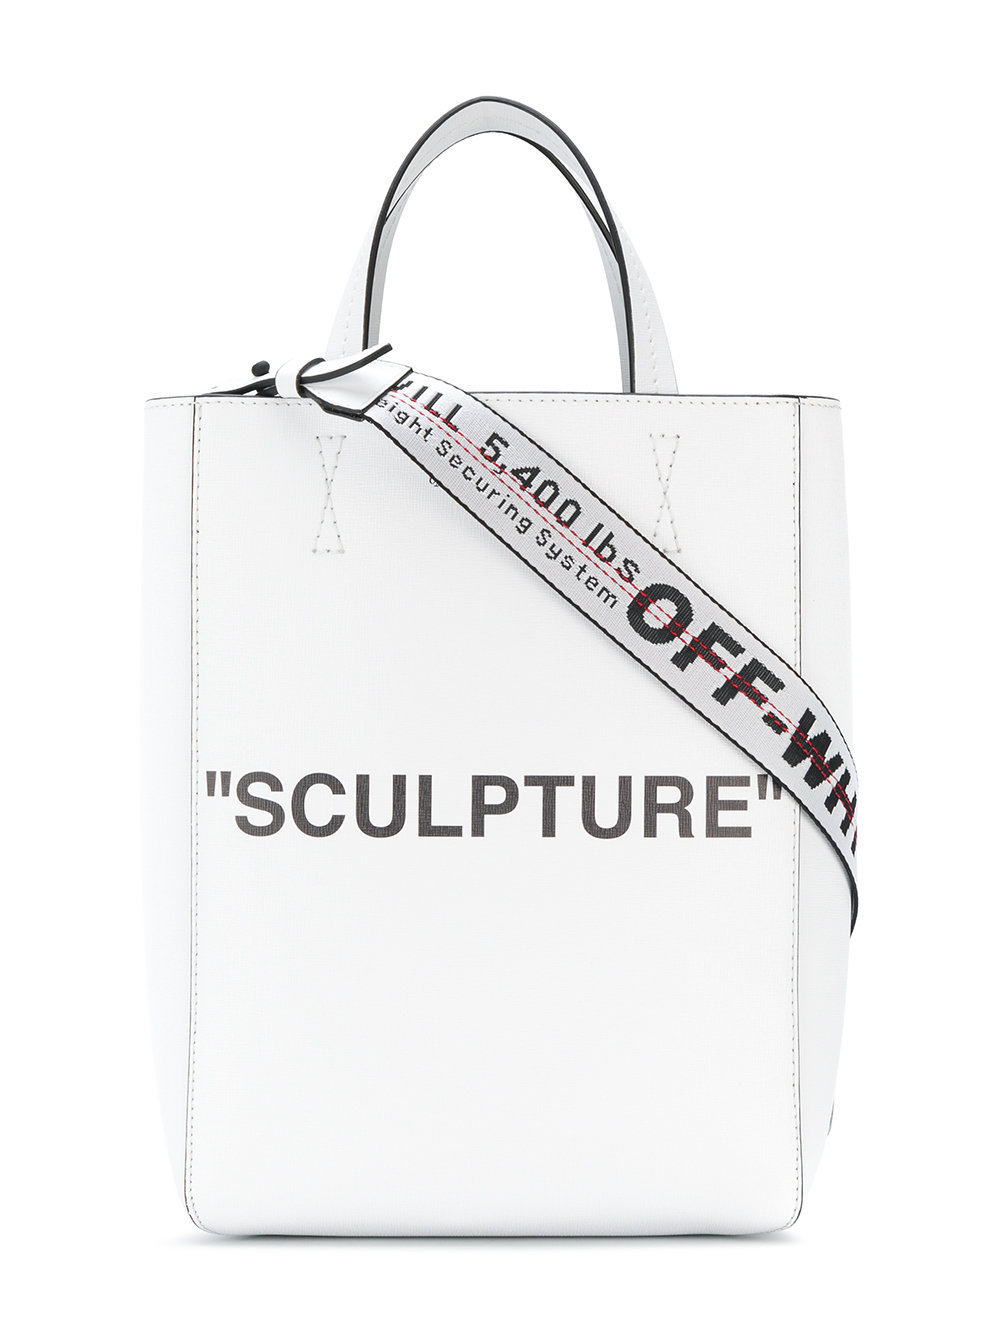 OFF-WHITE / 'SCULPTURE' TOTE ホワイト【関税・送料込】